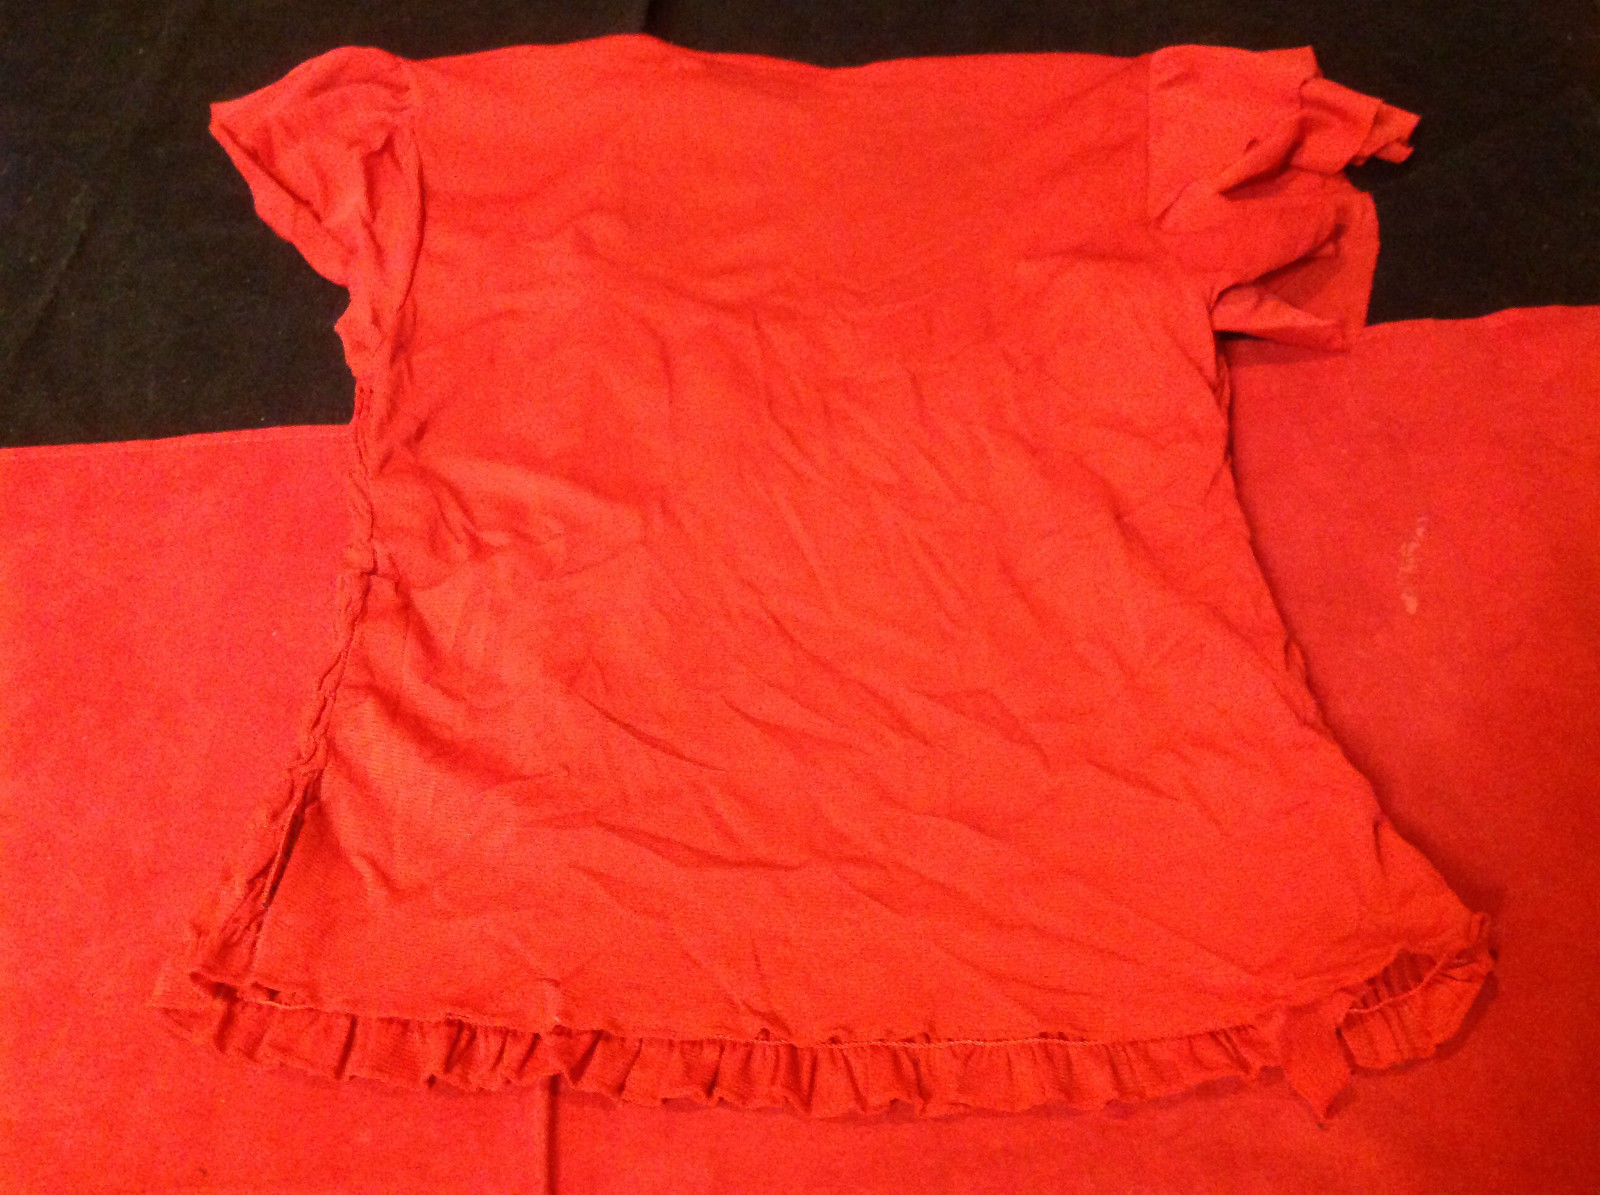 DKNY short sleeve red blouse